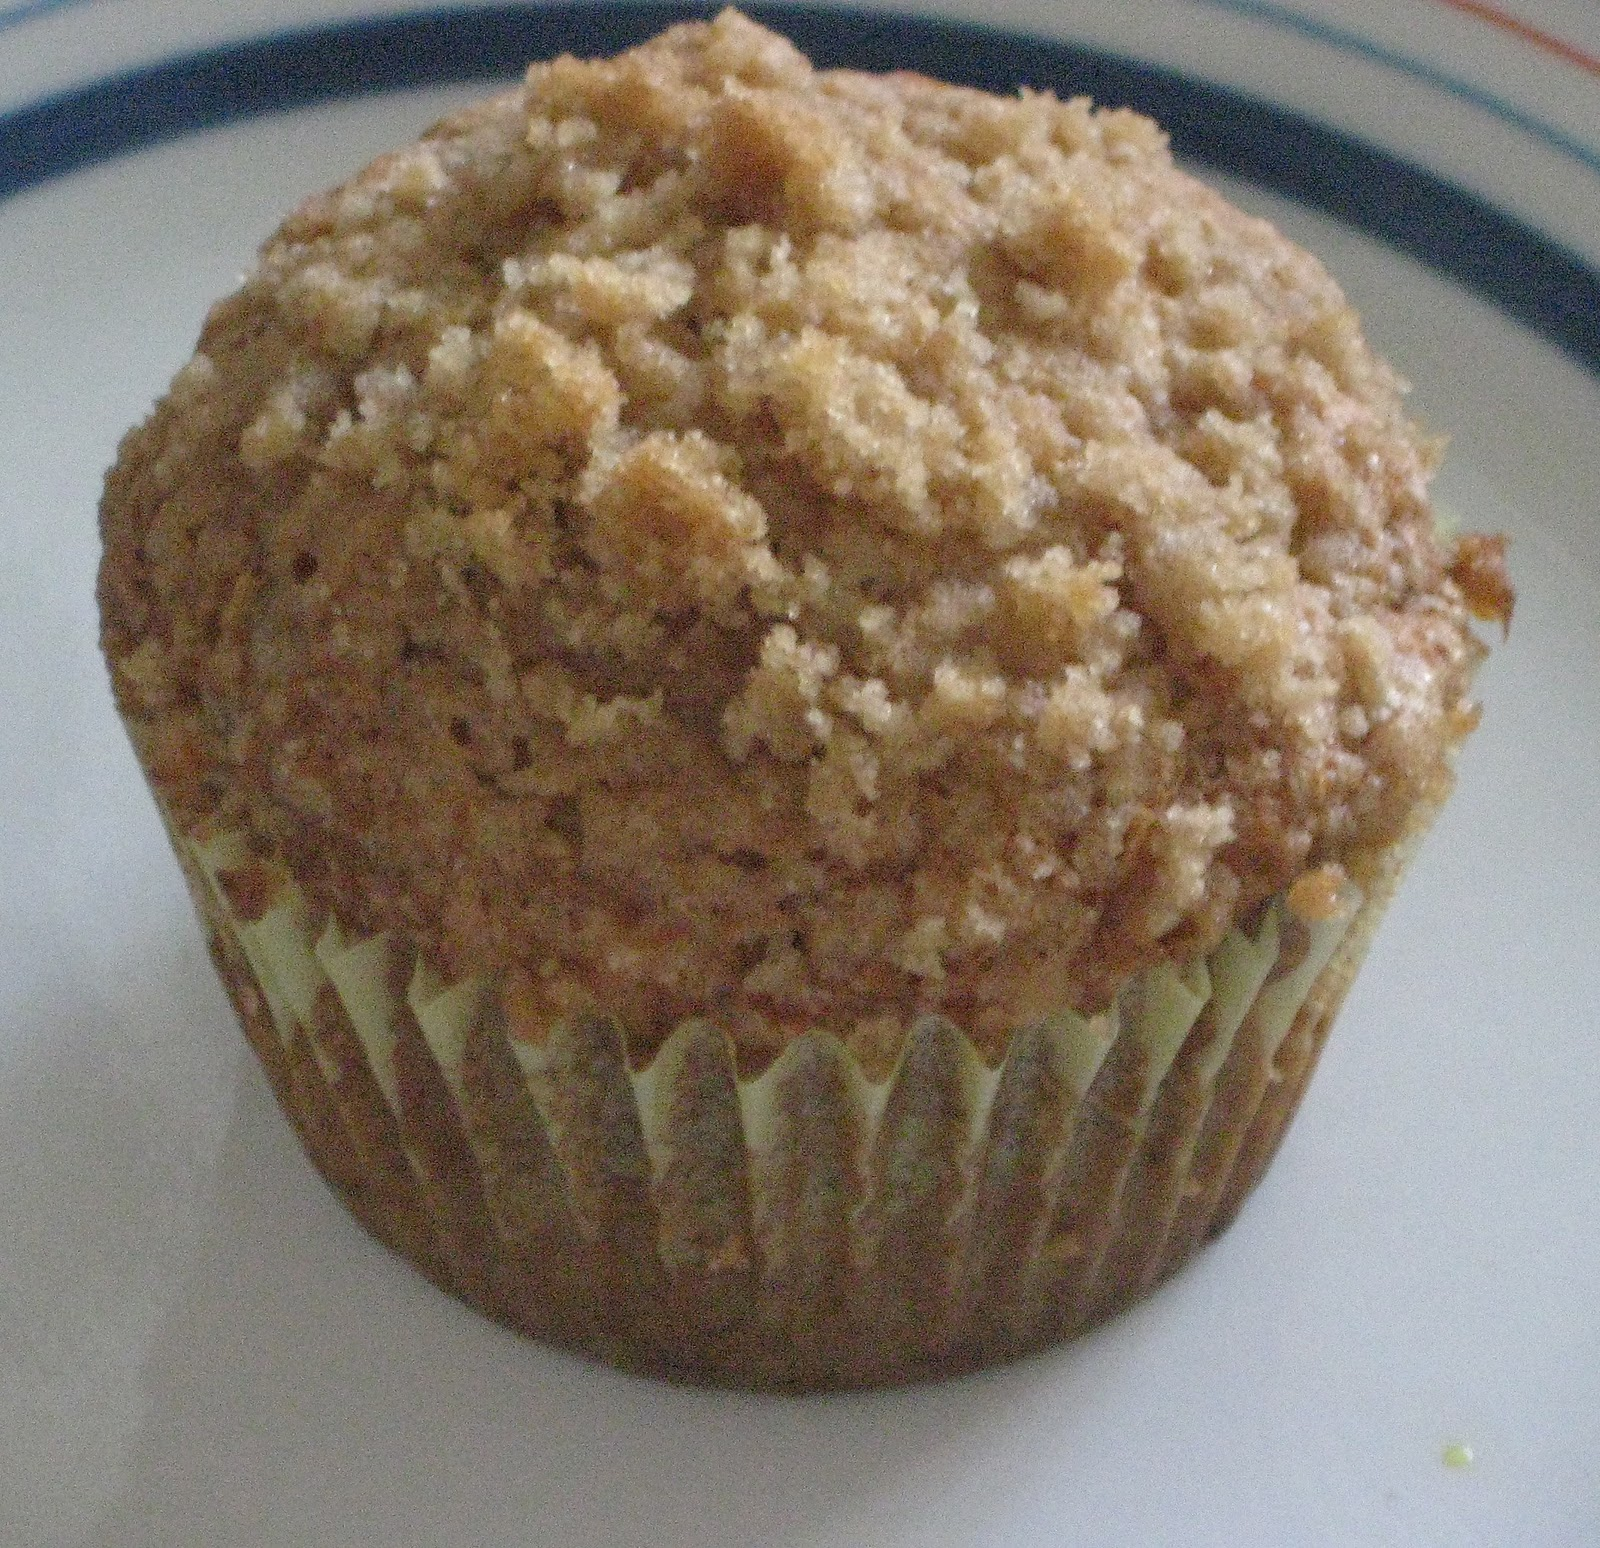 Simple Vegetarian Recipes: Eggless Banana Crumb Muffins